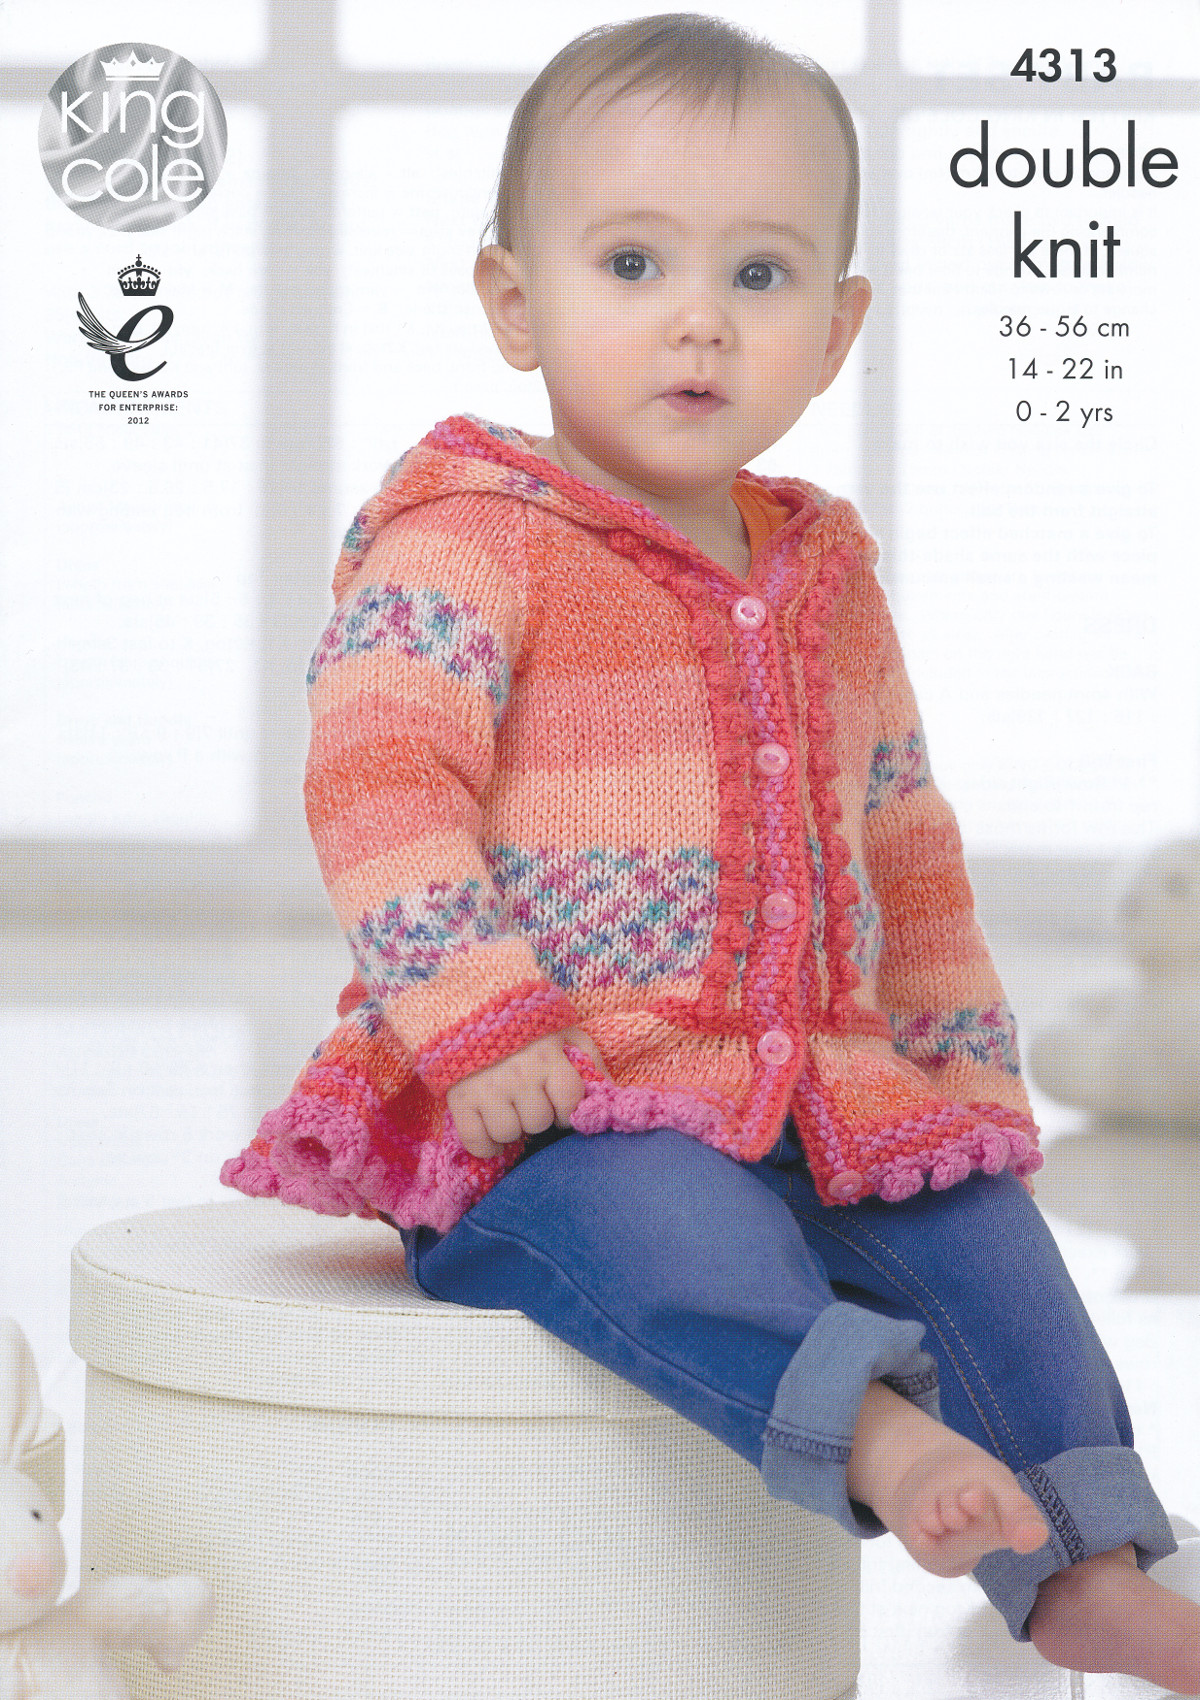 Double Knitting Patterns For Poncho : Baby Drifter DK Knitting Pattern King Cole Hoodie Dress ...